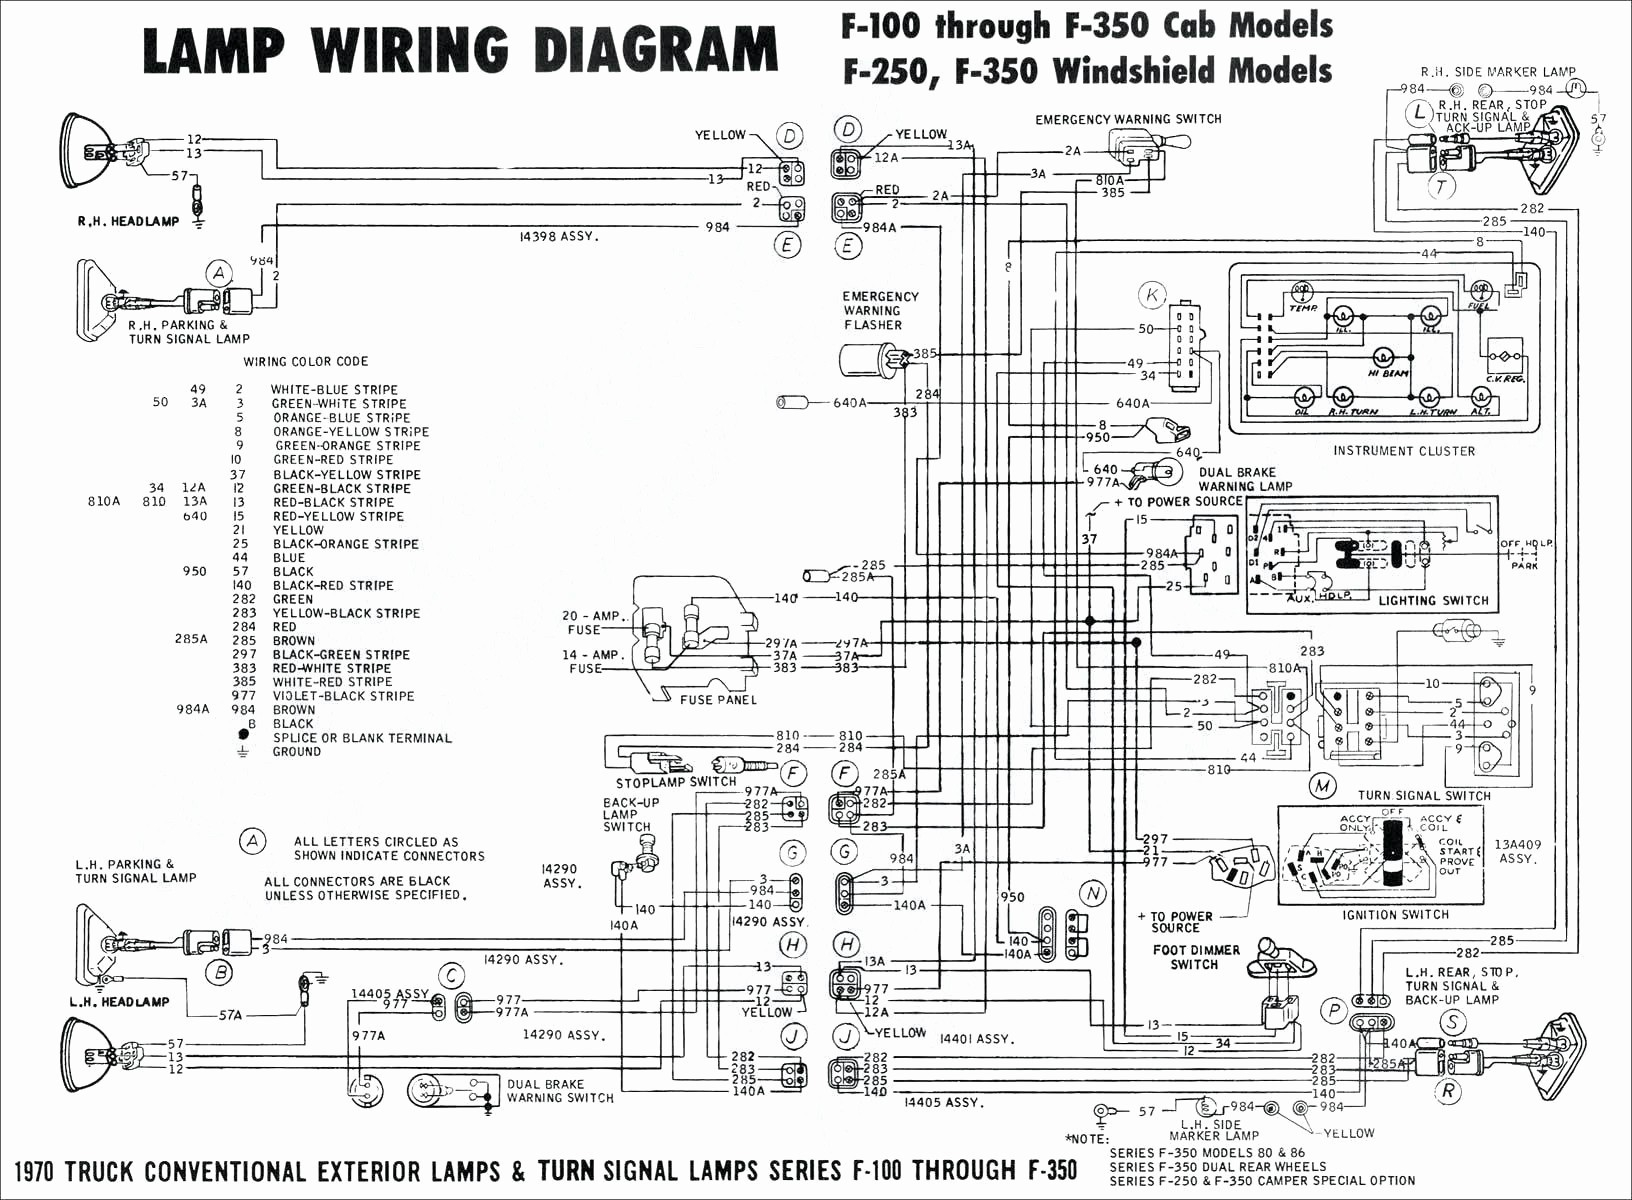 Wiring Diagram Gm - Wiring Diagram Schematics on